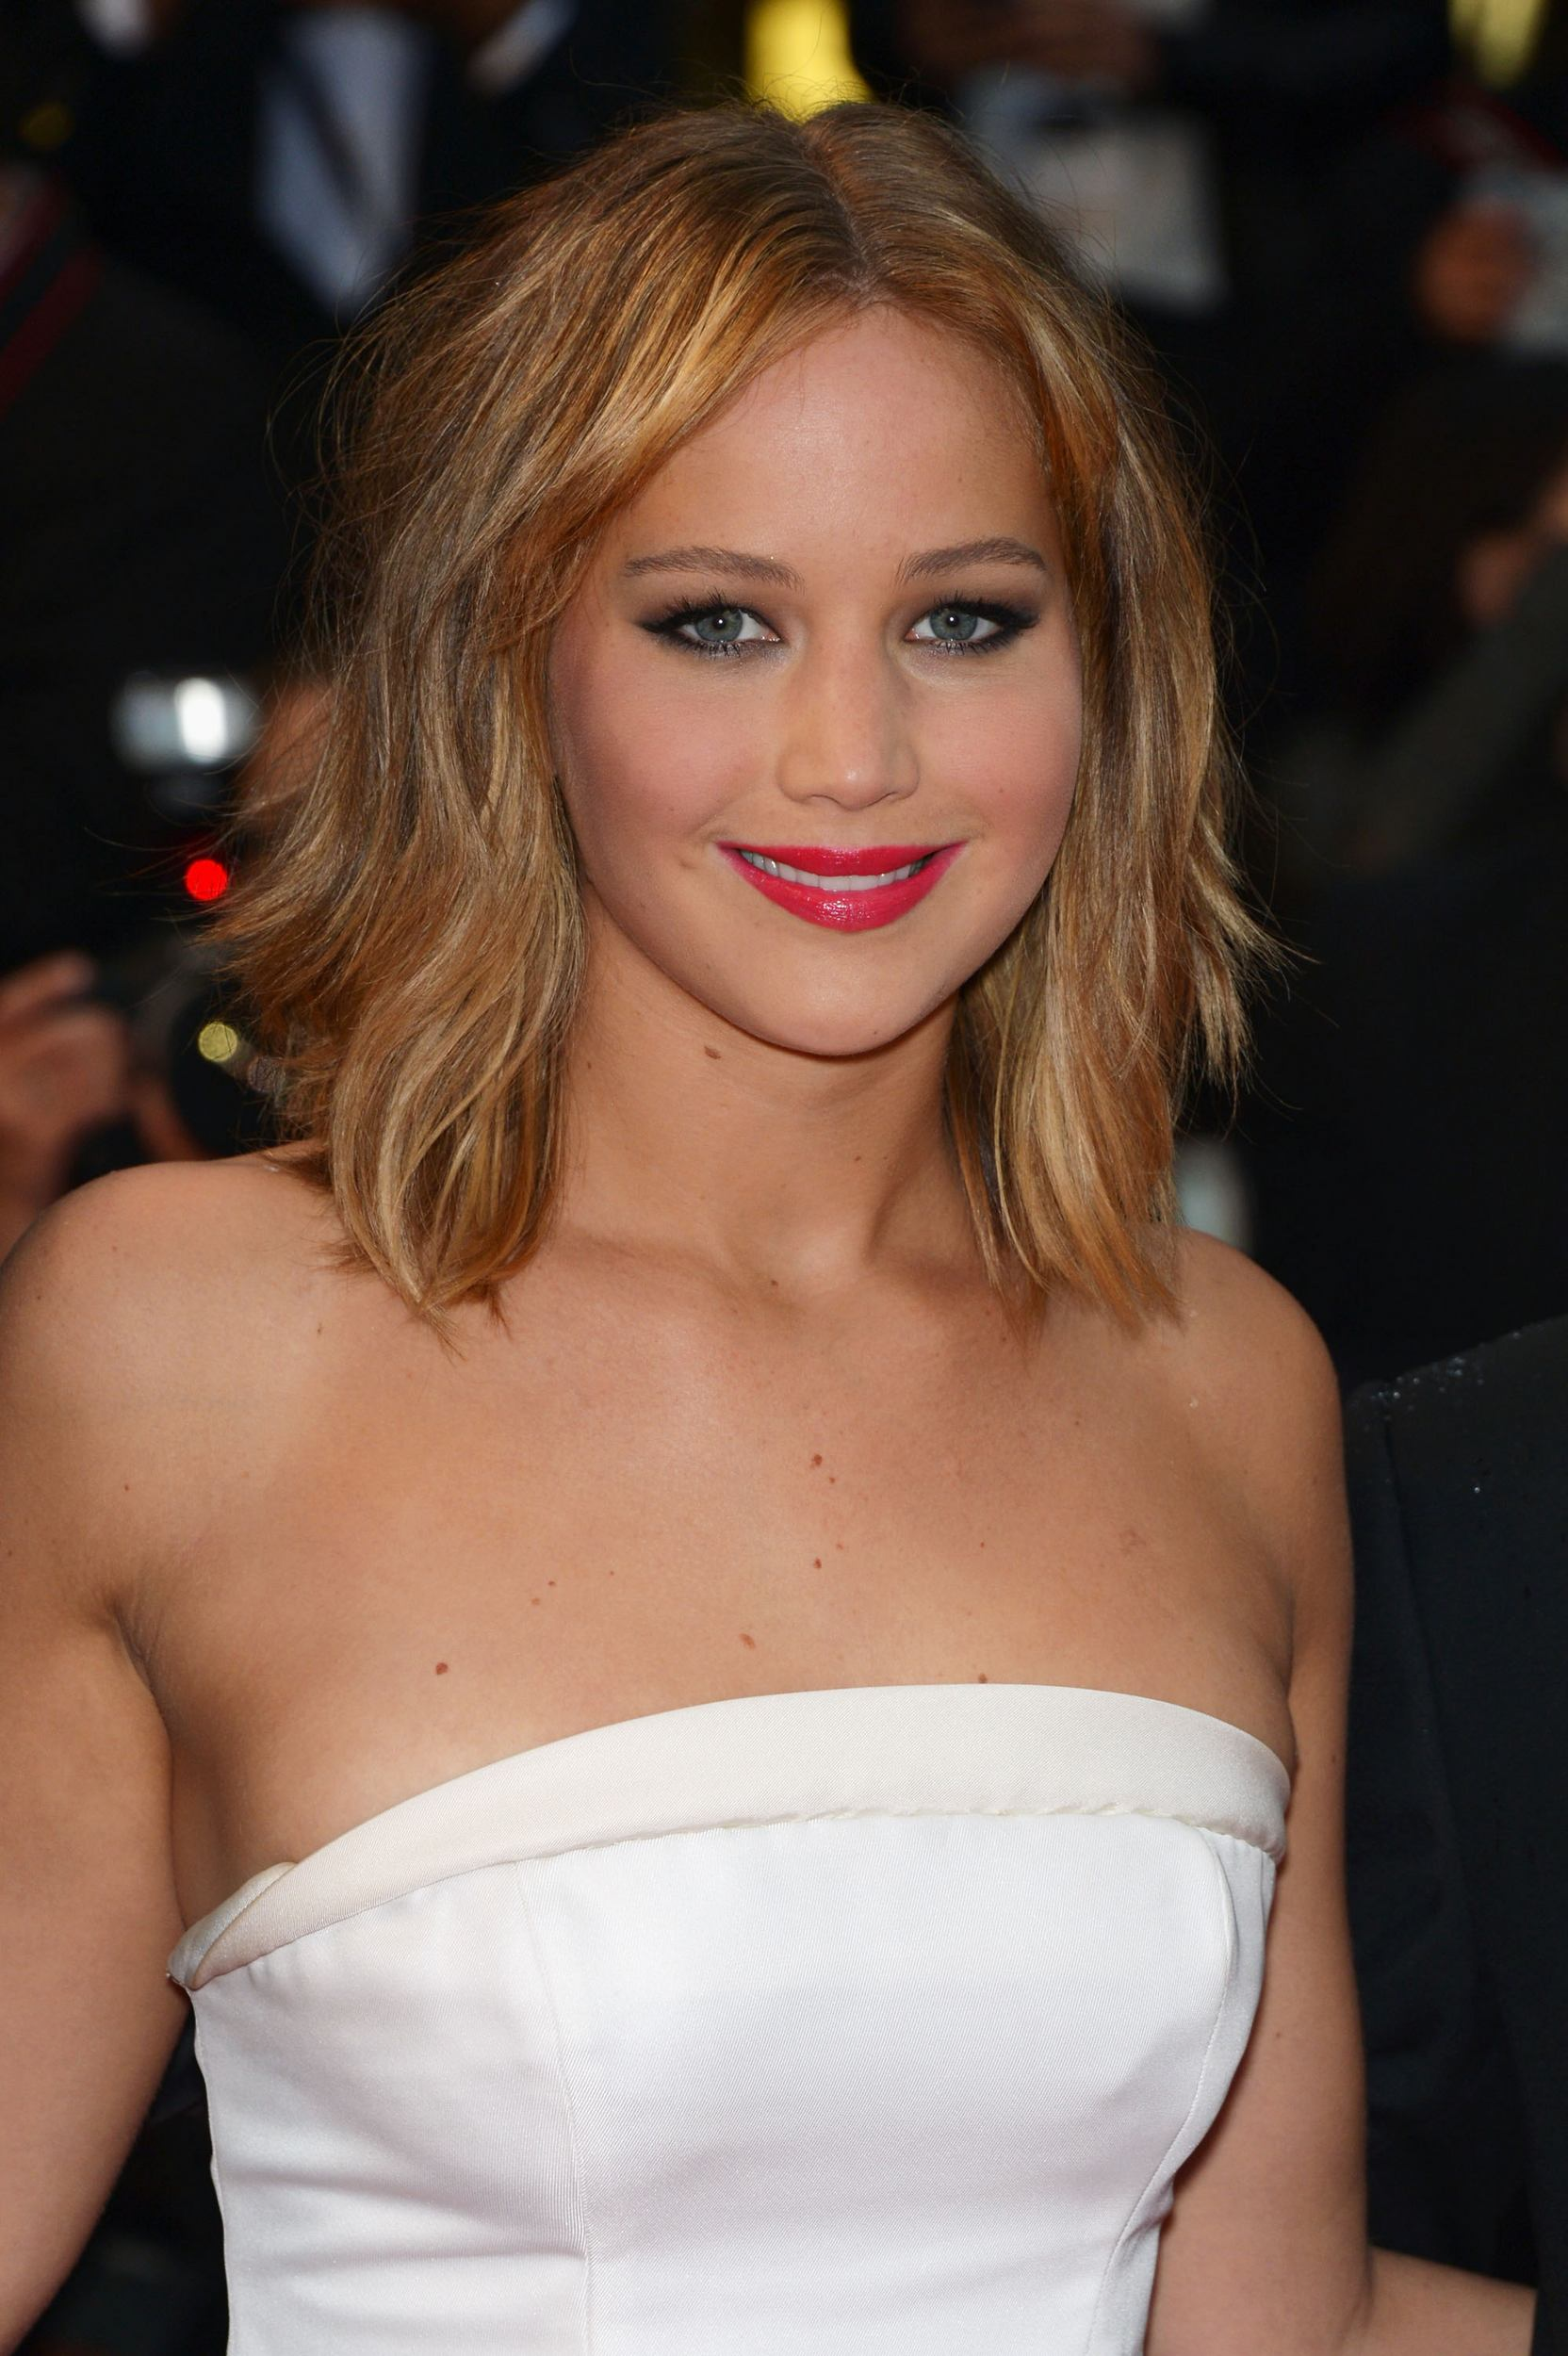 Jennifer Lawrence 844252 Wallpapers High Quality Download Free